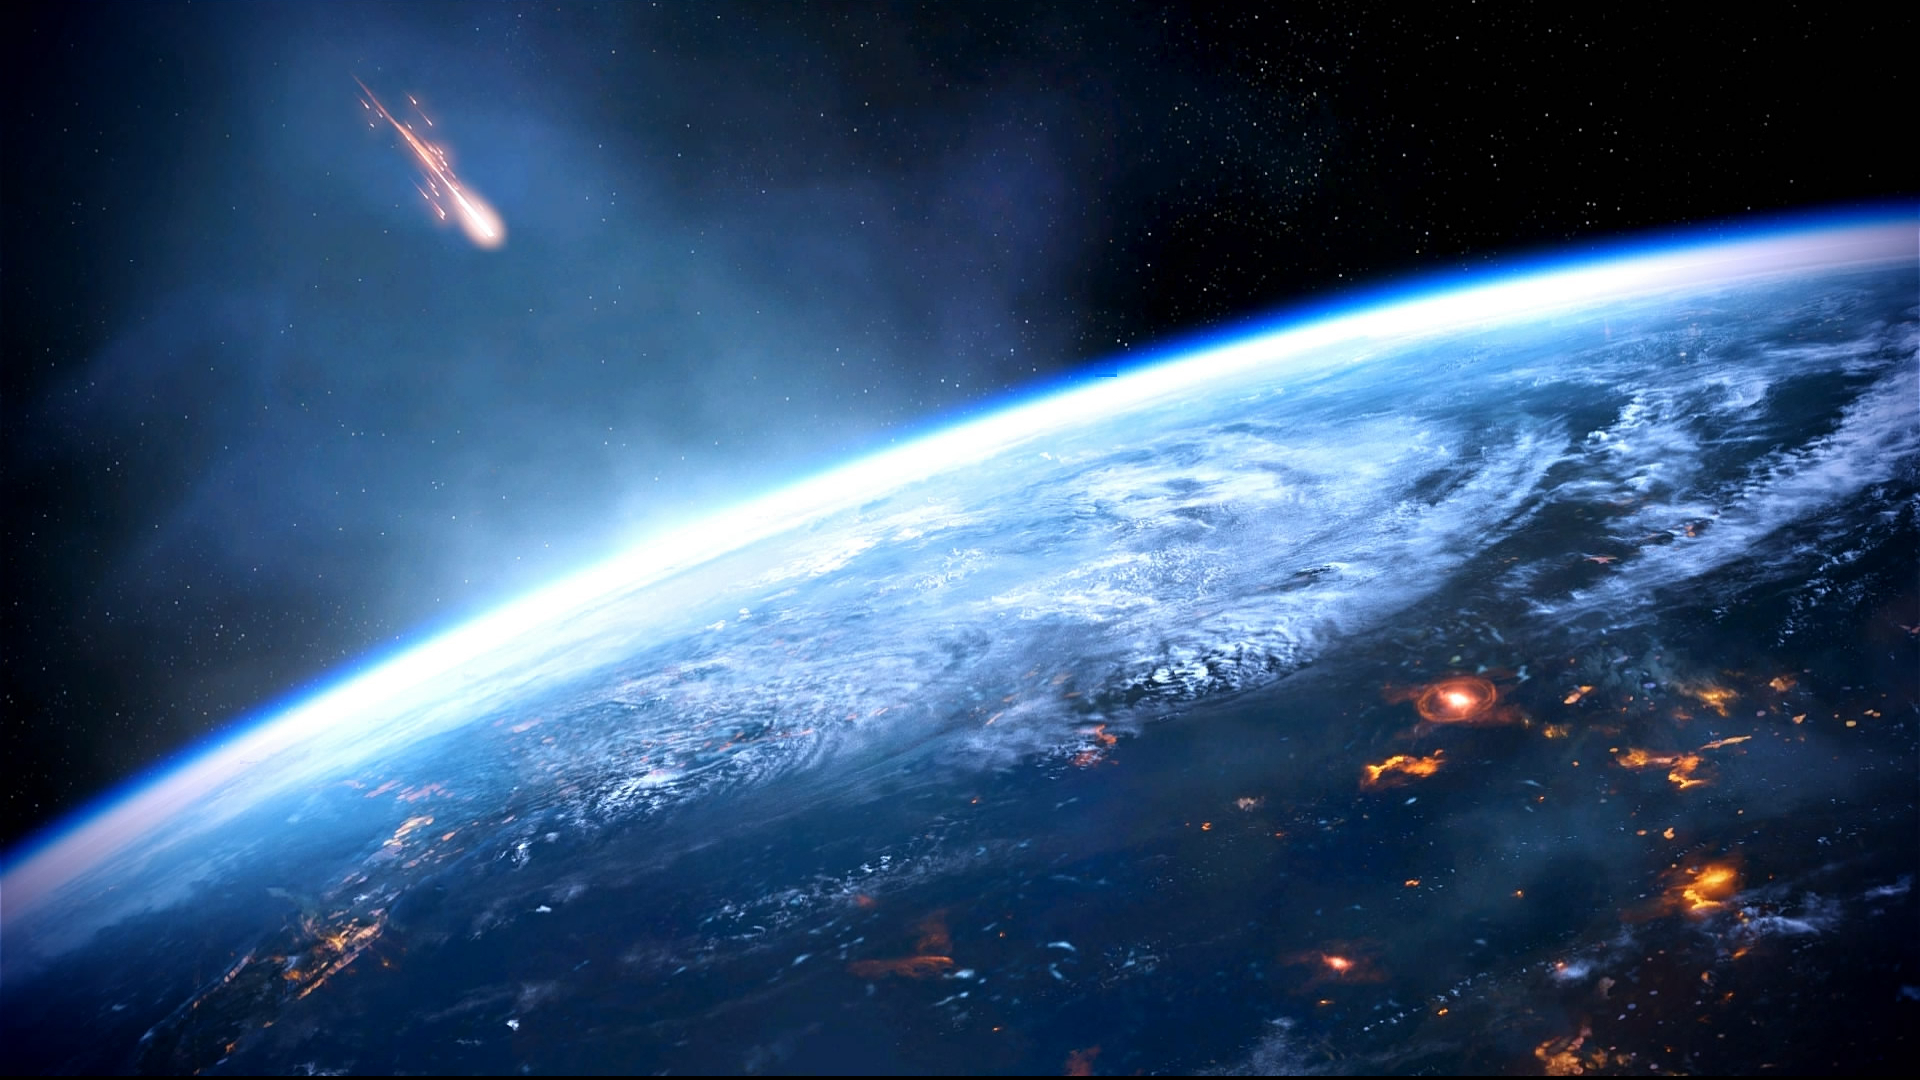 Mass Effect 3 Earth Dreamscene by droot1986